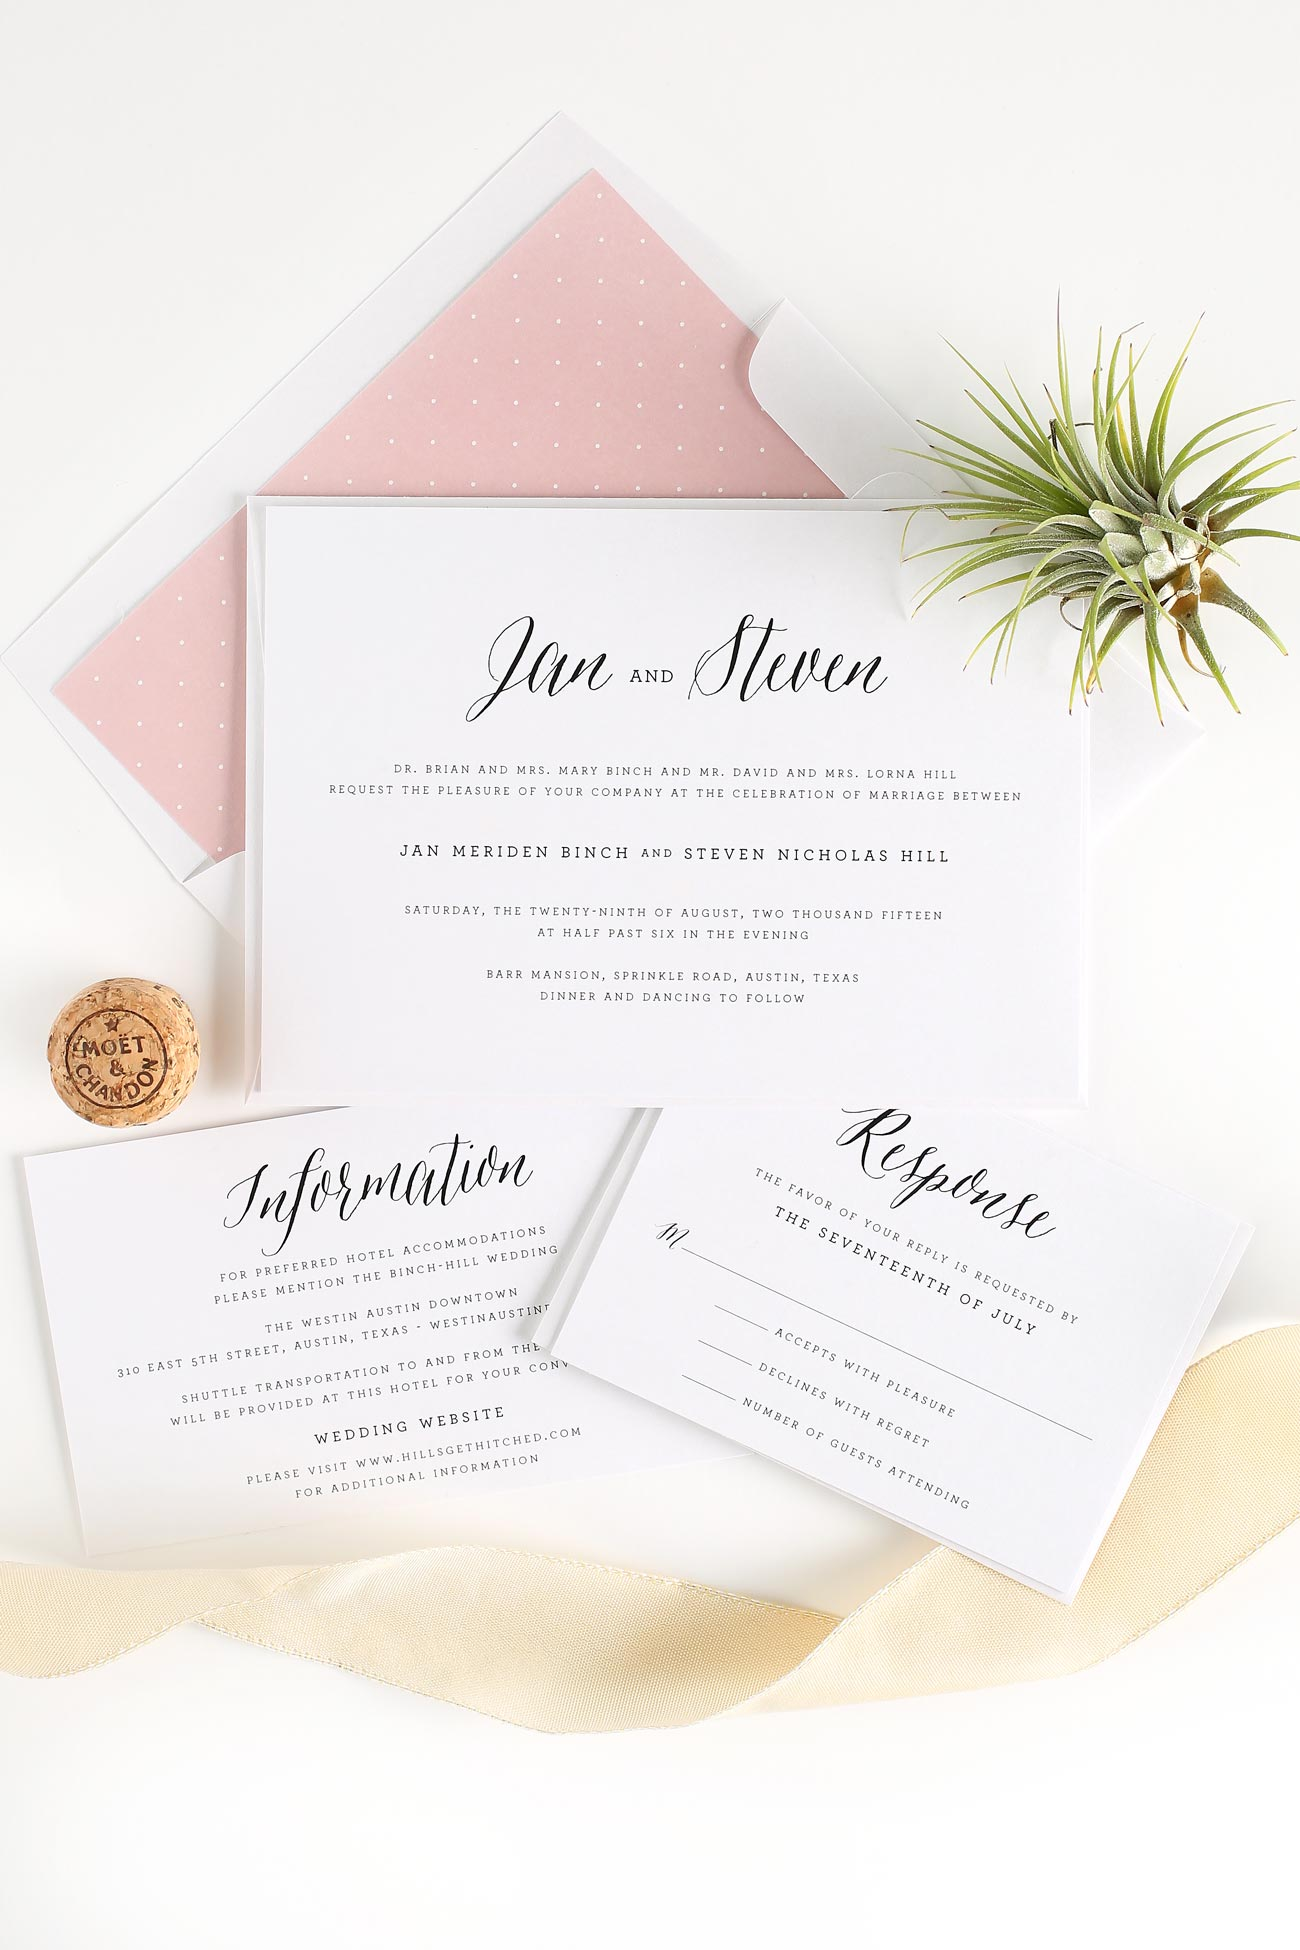 Rustic and Romantic wedding invites in blush pink